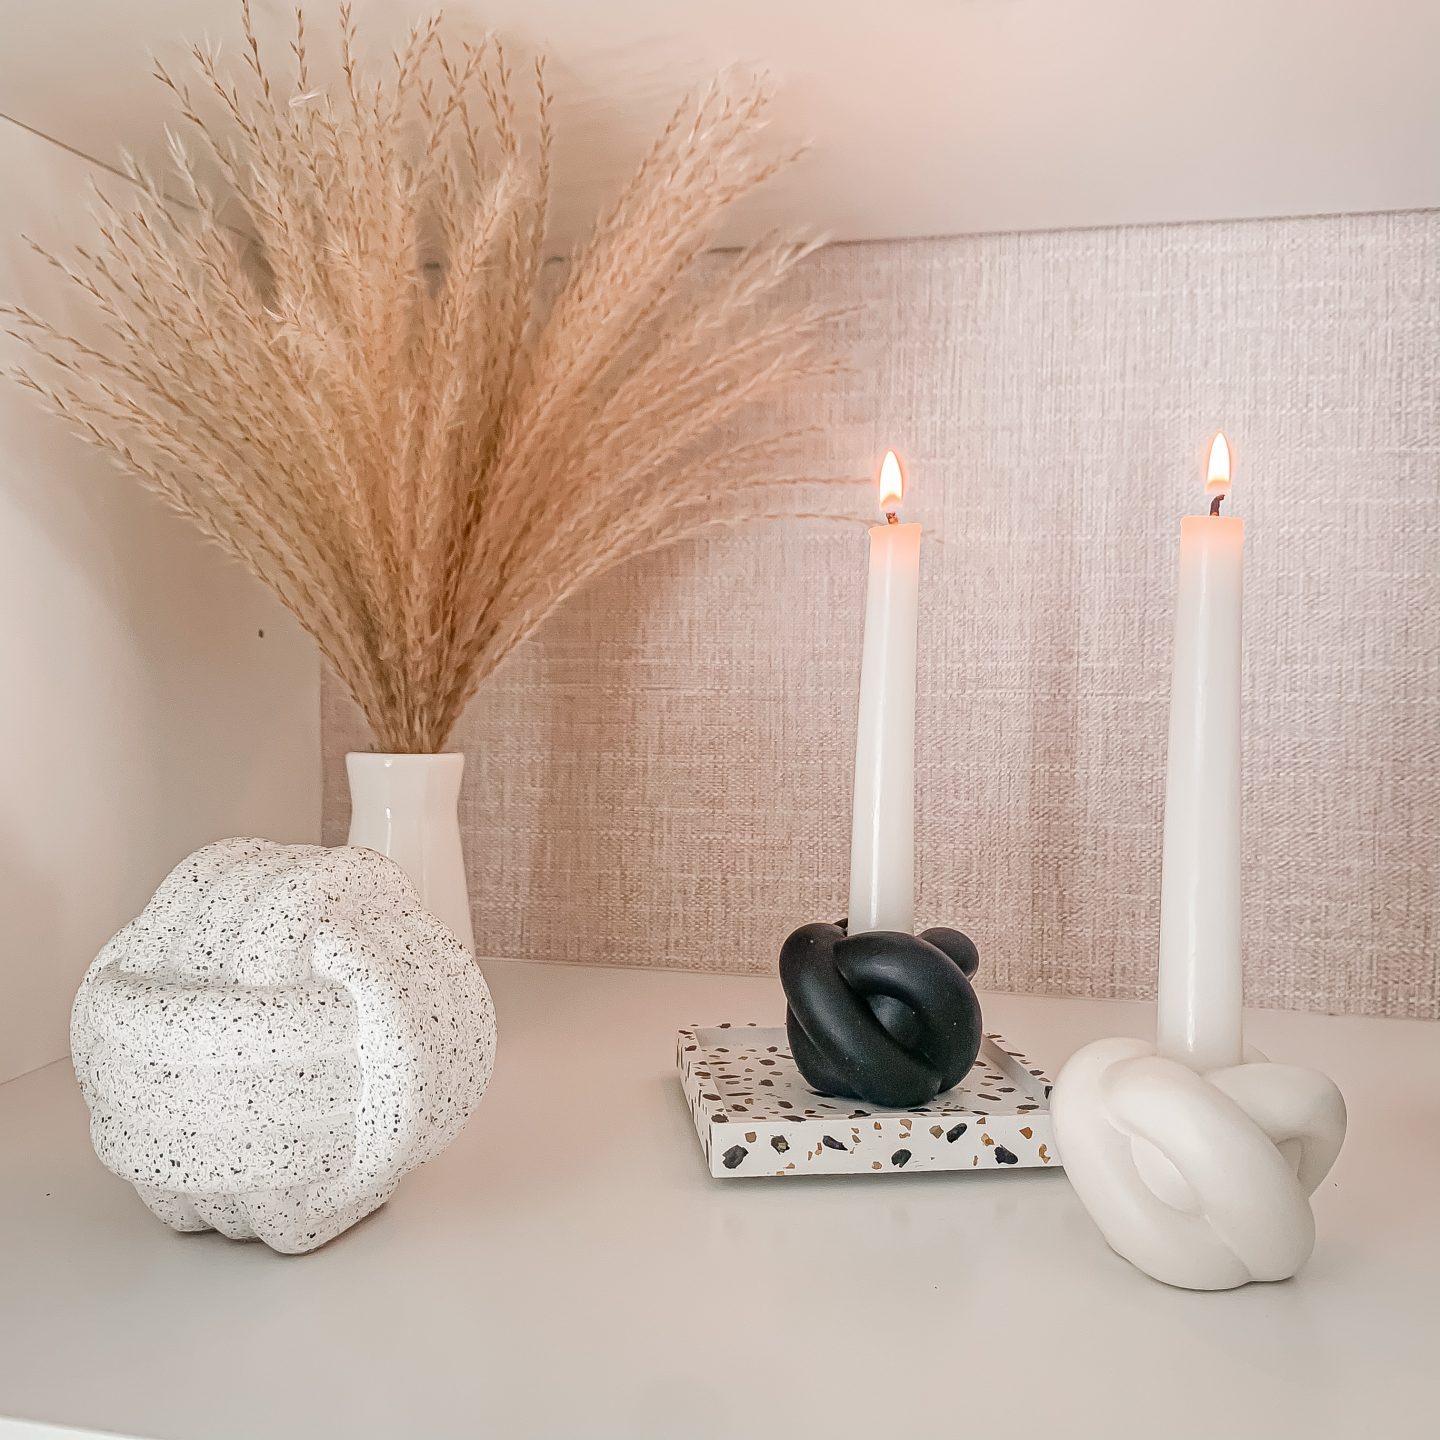 BRINGING THE KNOT TREND INTO YOUR HOME